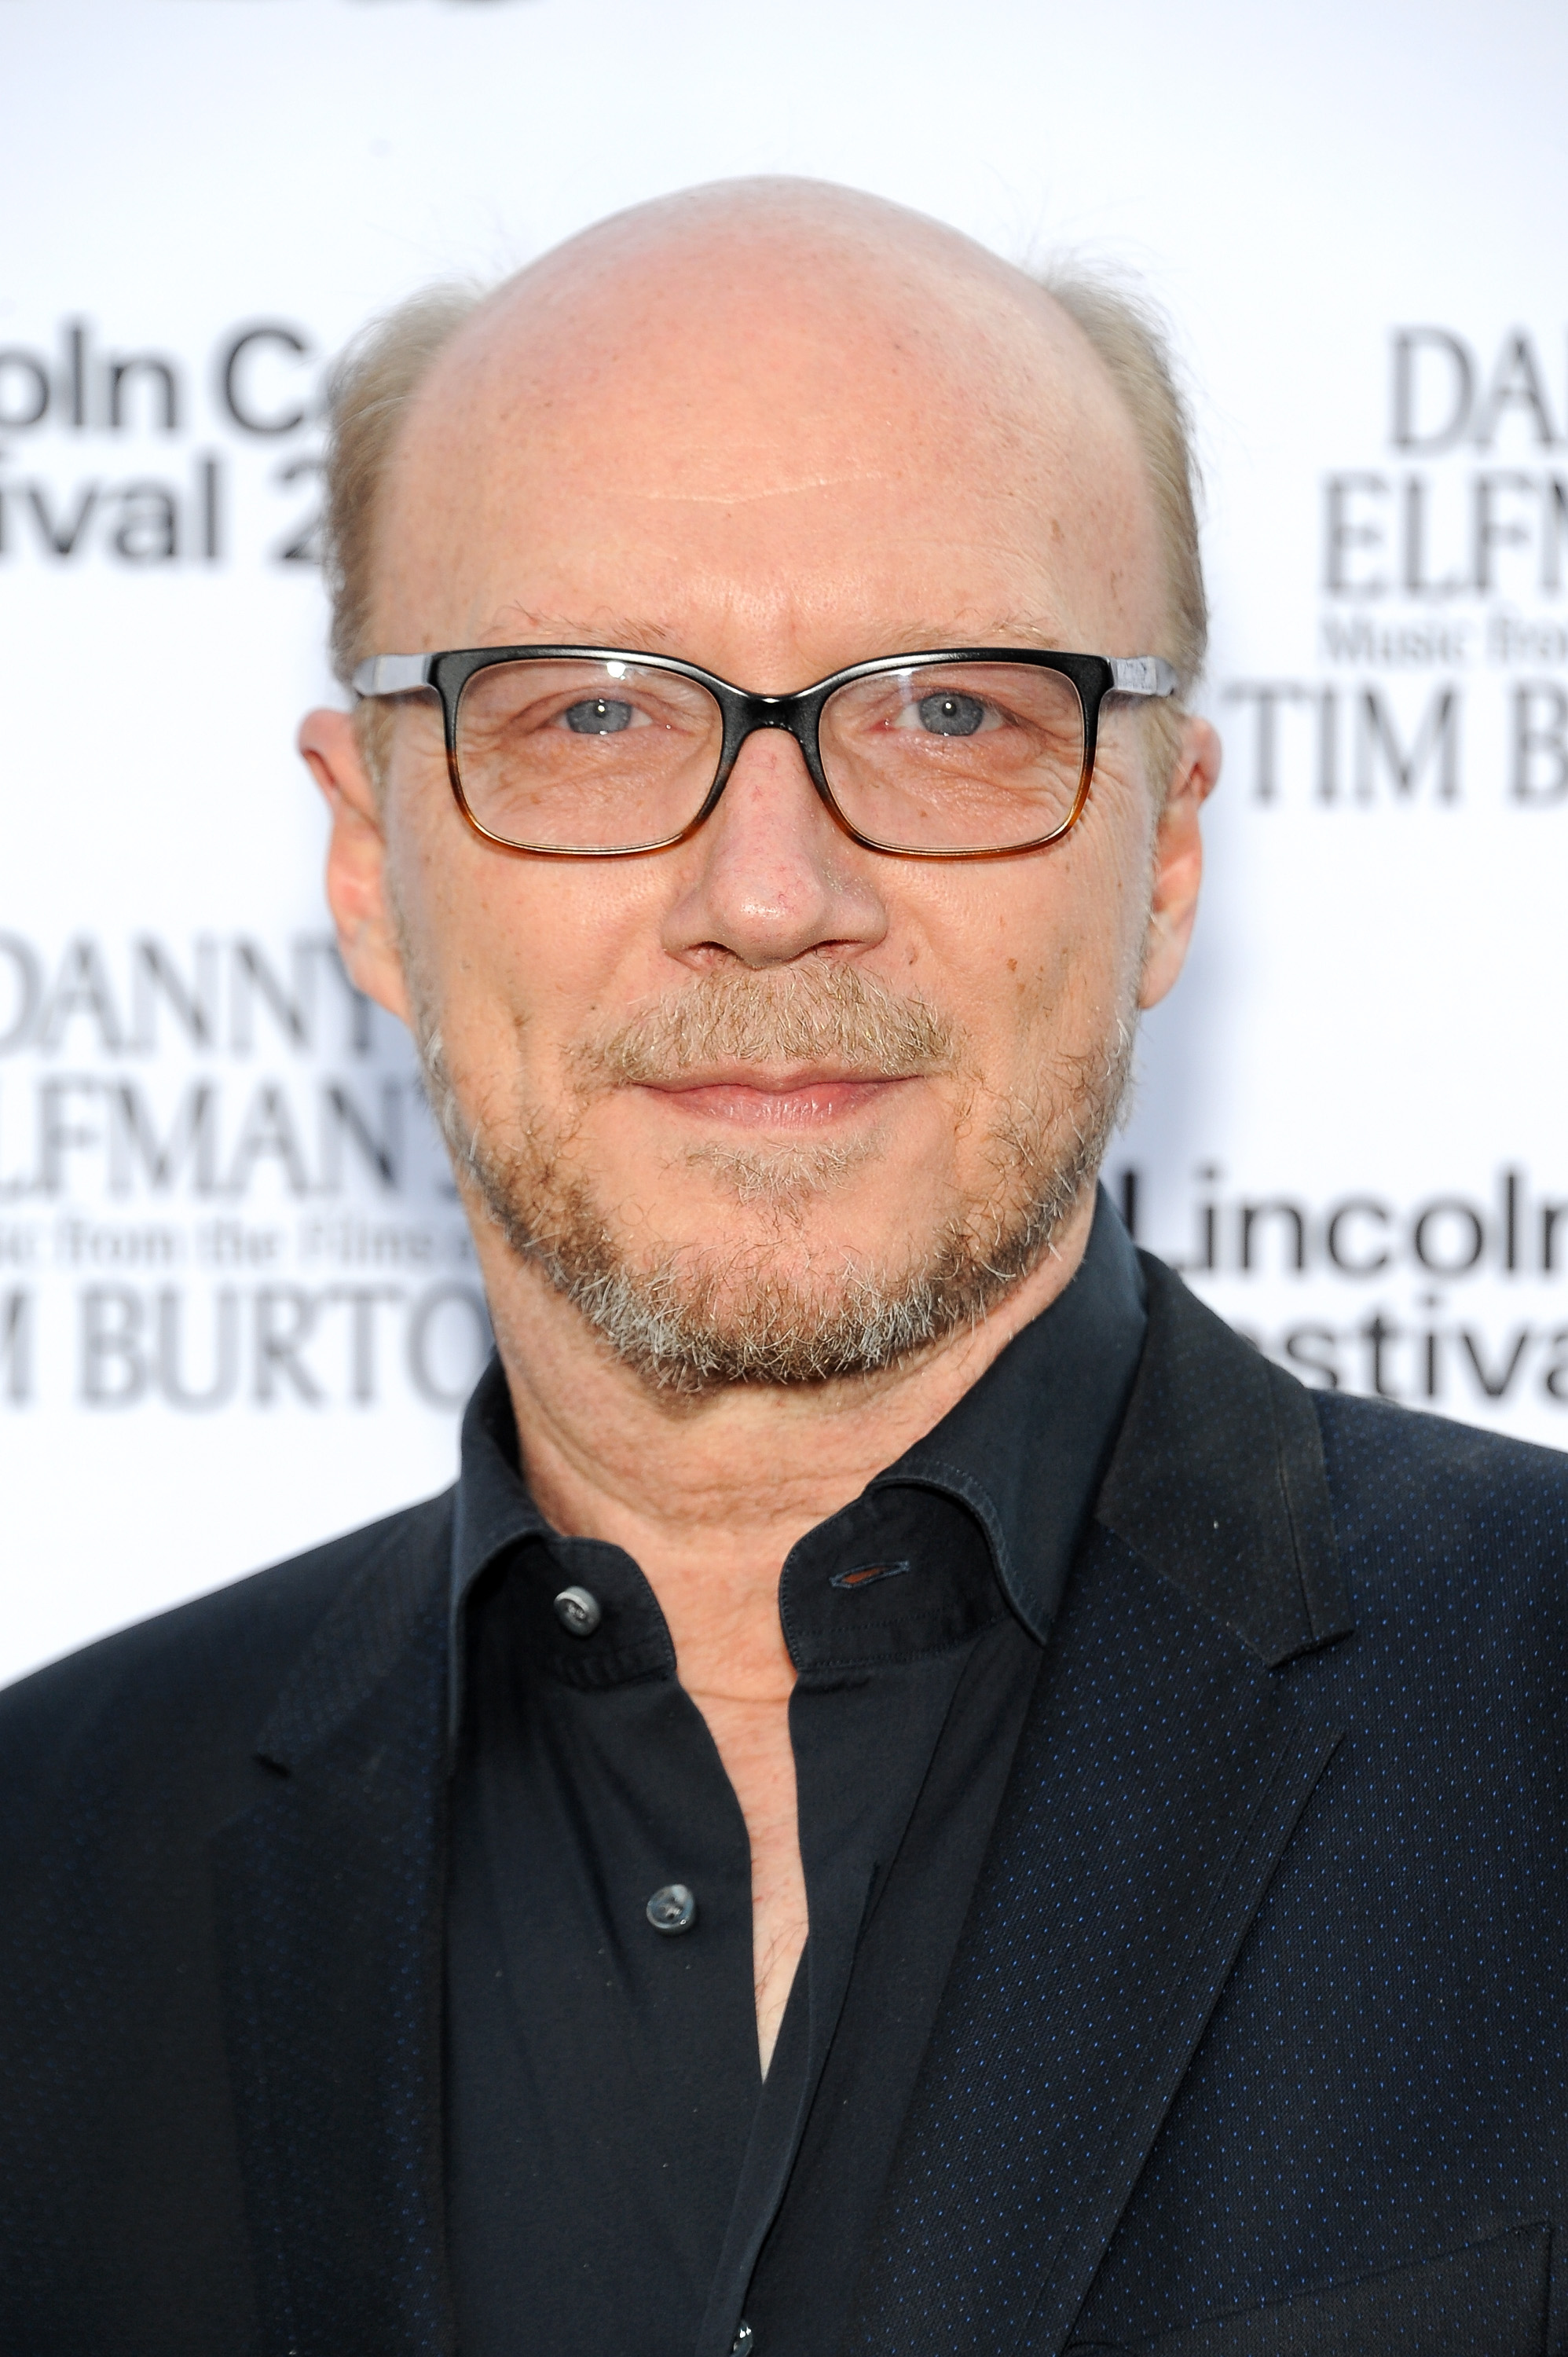 Paul Haggis attends the opening night of  Danny Elfman's Music from the Films of Tim Burton  at Lincoln Center on July 6, 2015 in New York City.